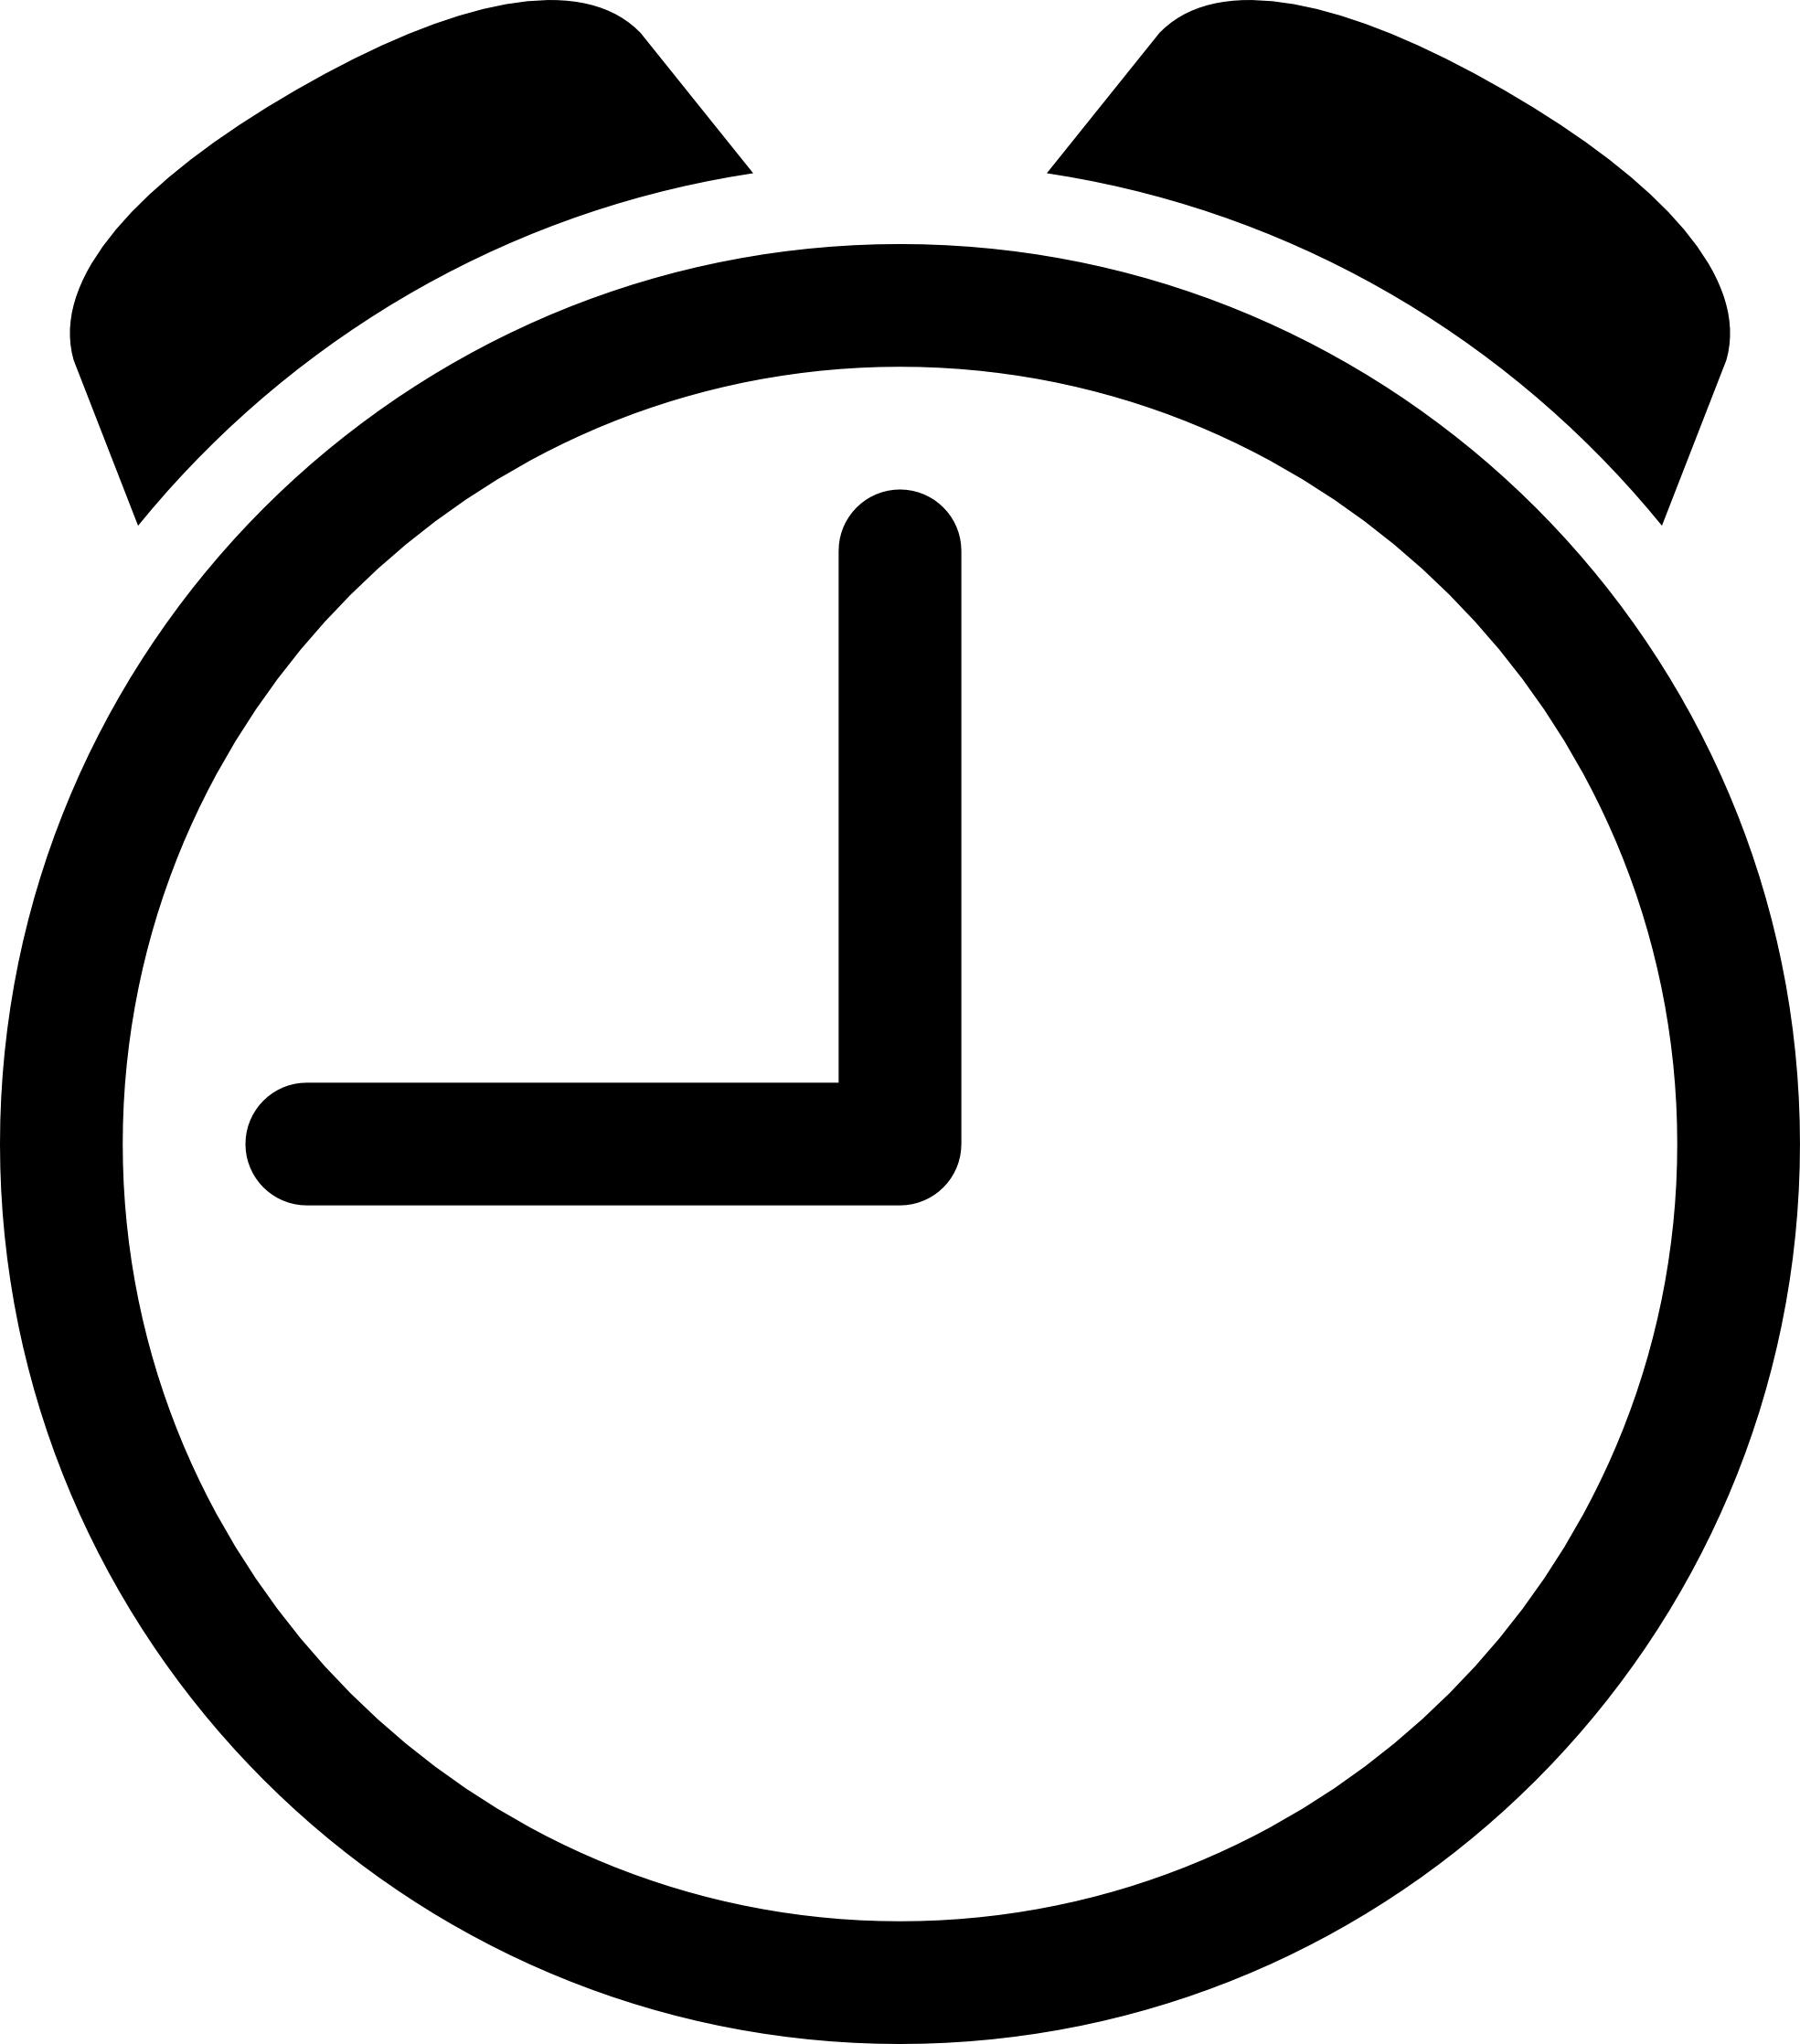 Clock Clipart Black And White & Clock Black And White Clip Art.